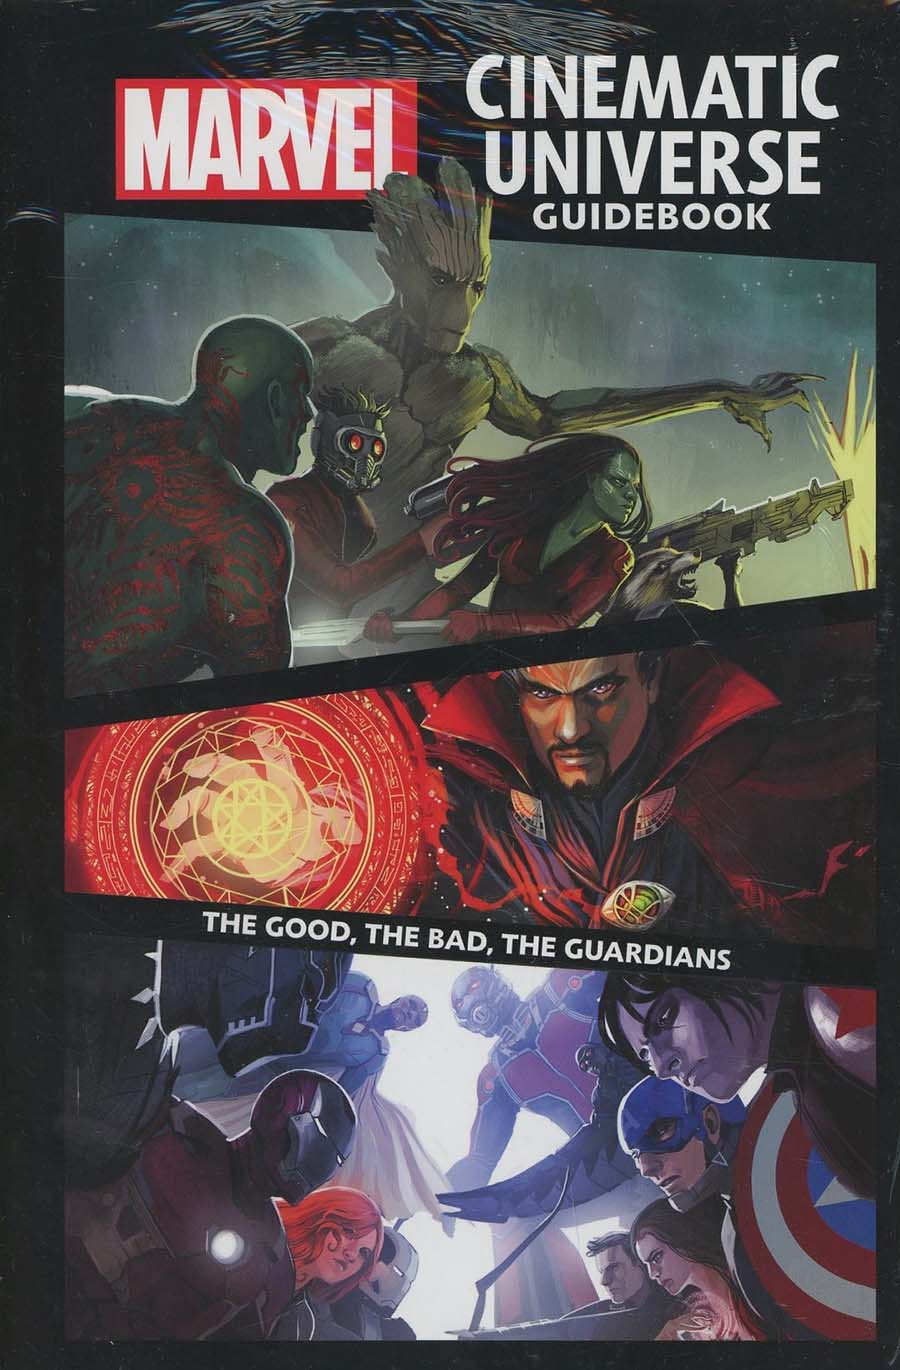 Marvel Cinematic Universe Guidebook The Good The Bad The Guardians HC